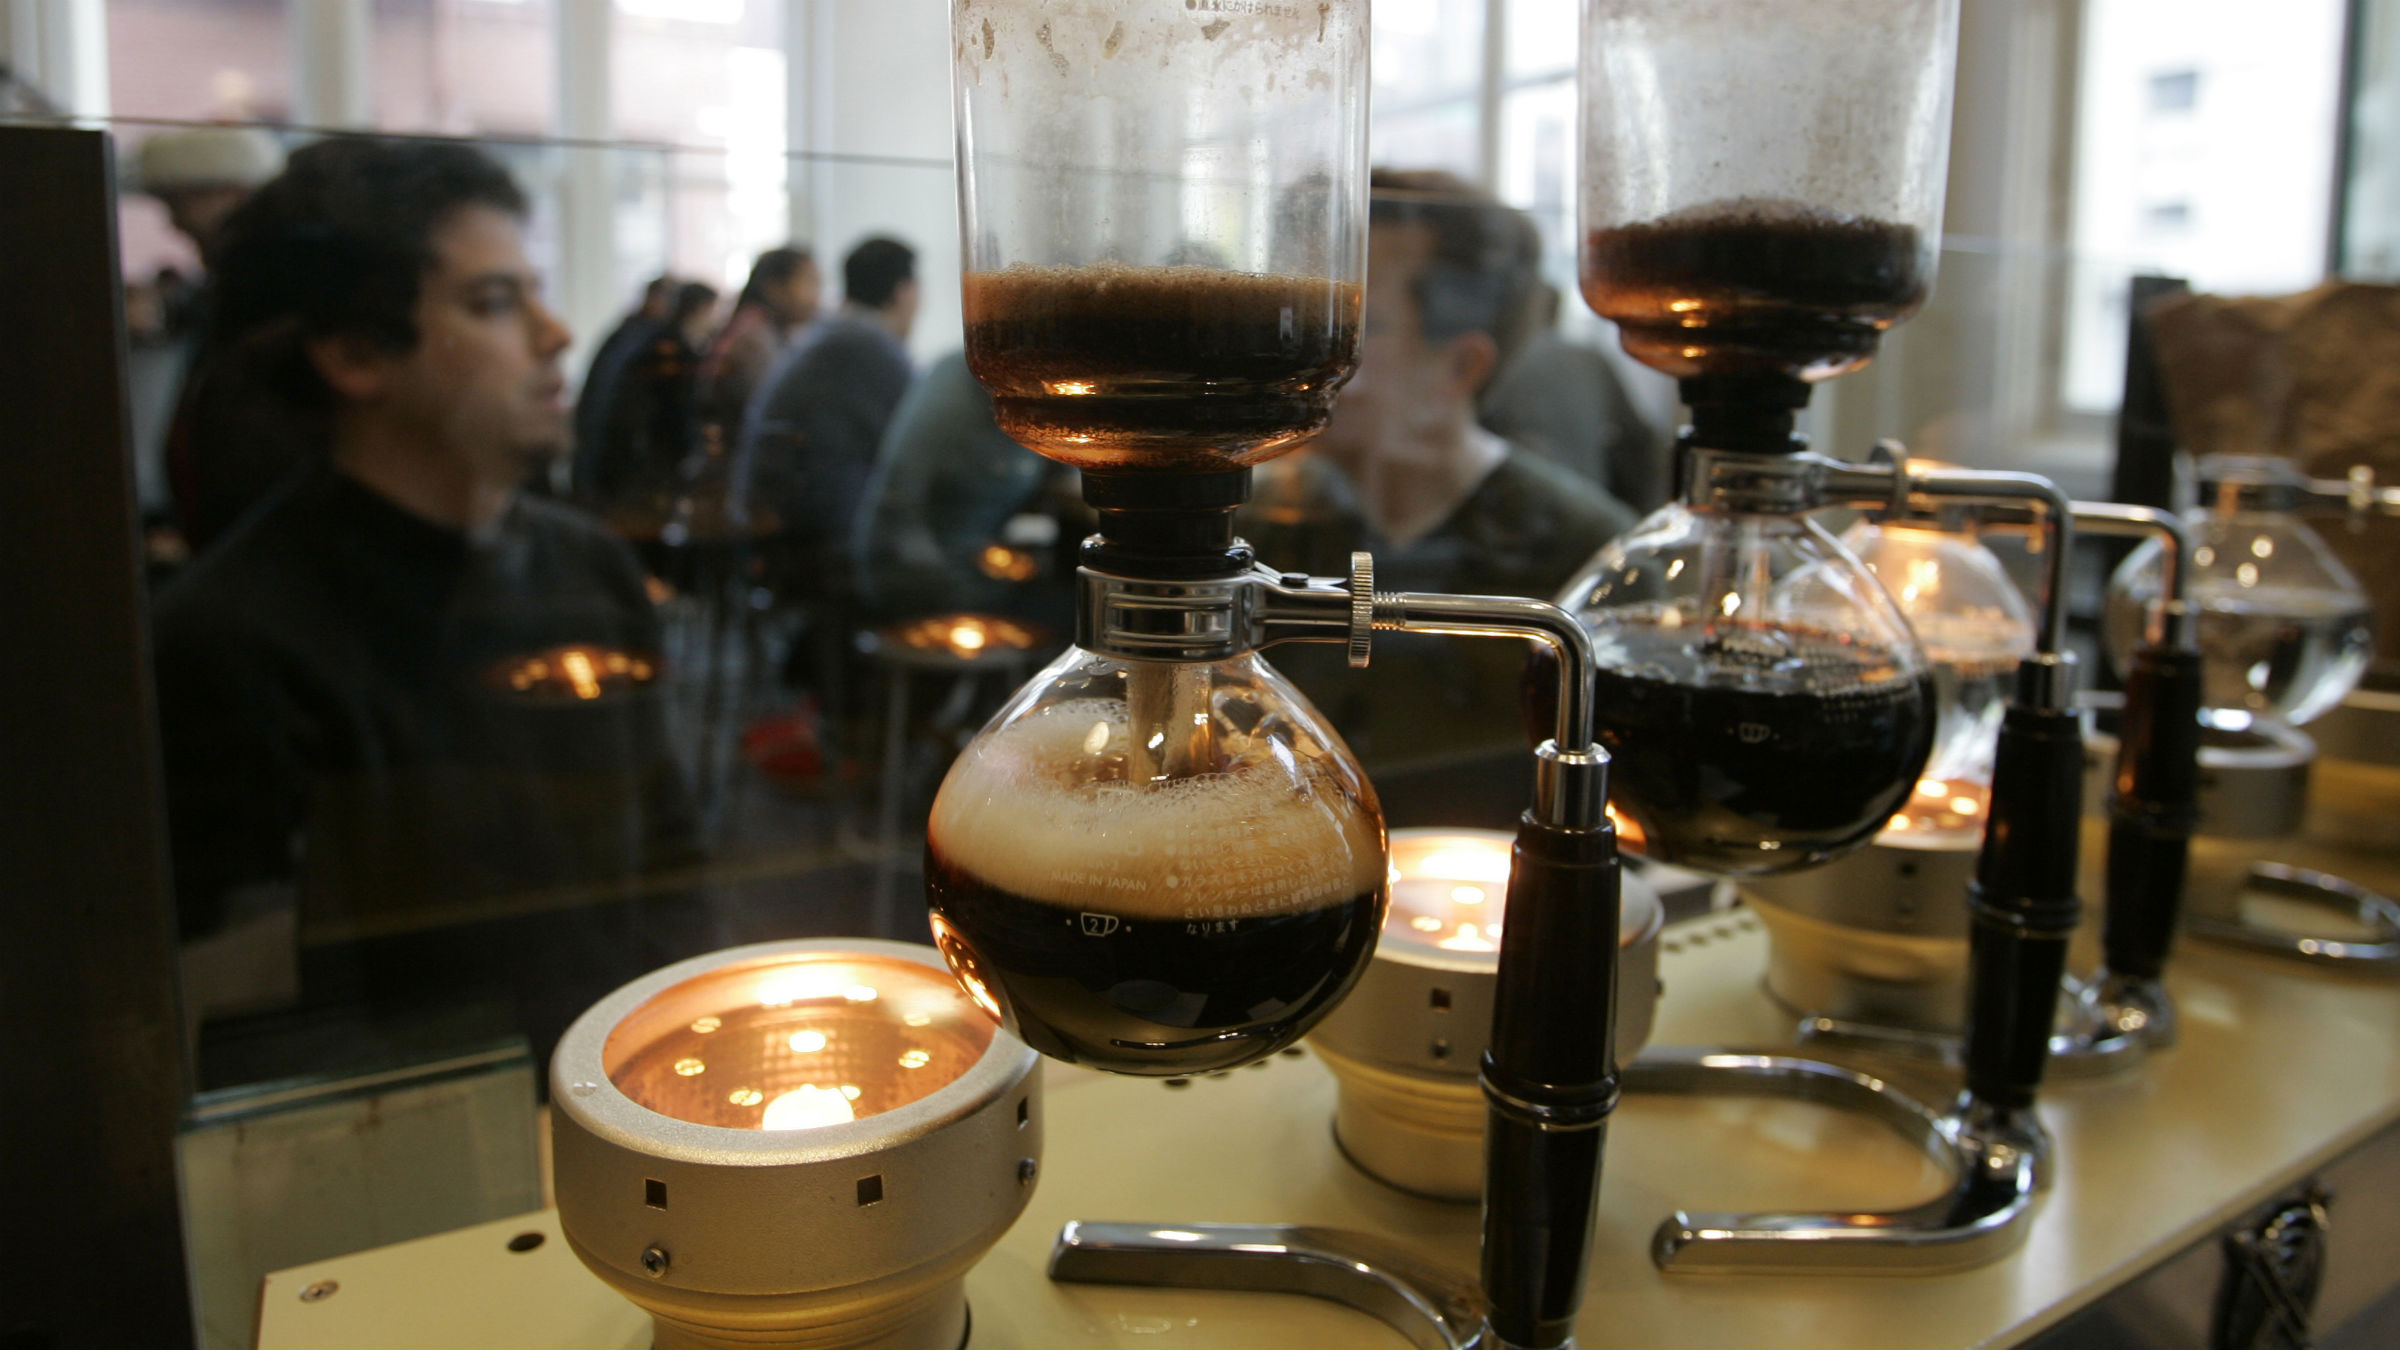 Coffee made in a siphon forms bubbles as it drips back into a pot at the Blue Bottle Cafe in San Francisco, Tuesday, Dec. 16, 2008. The artisan microroaster opened the cafe earlier this year and the halogen-powered siphon bar from Japan makes coffees that sell from $6 a cup to $9 to $12 a pot. The siphon produces a coffee described as delicate and soft, with flavors that change as the temperature changes.